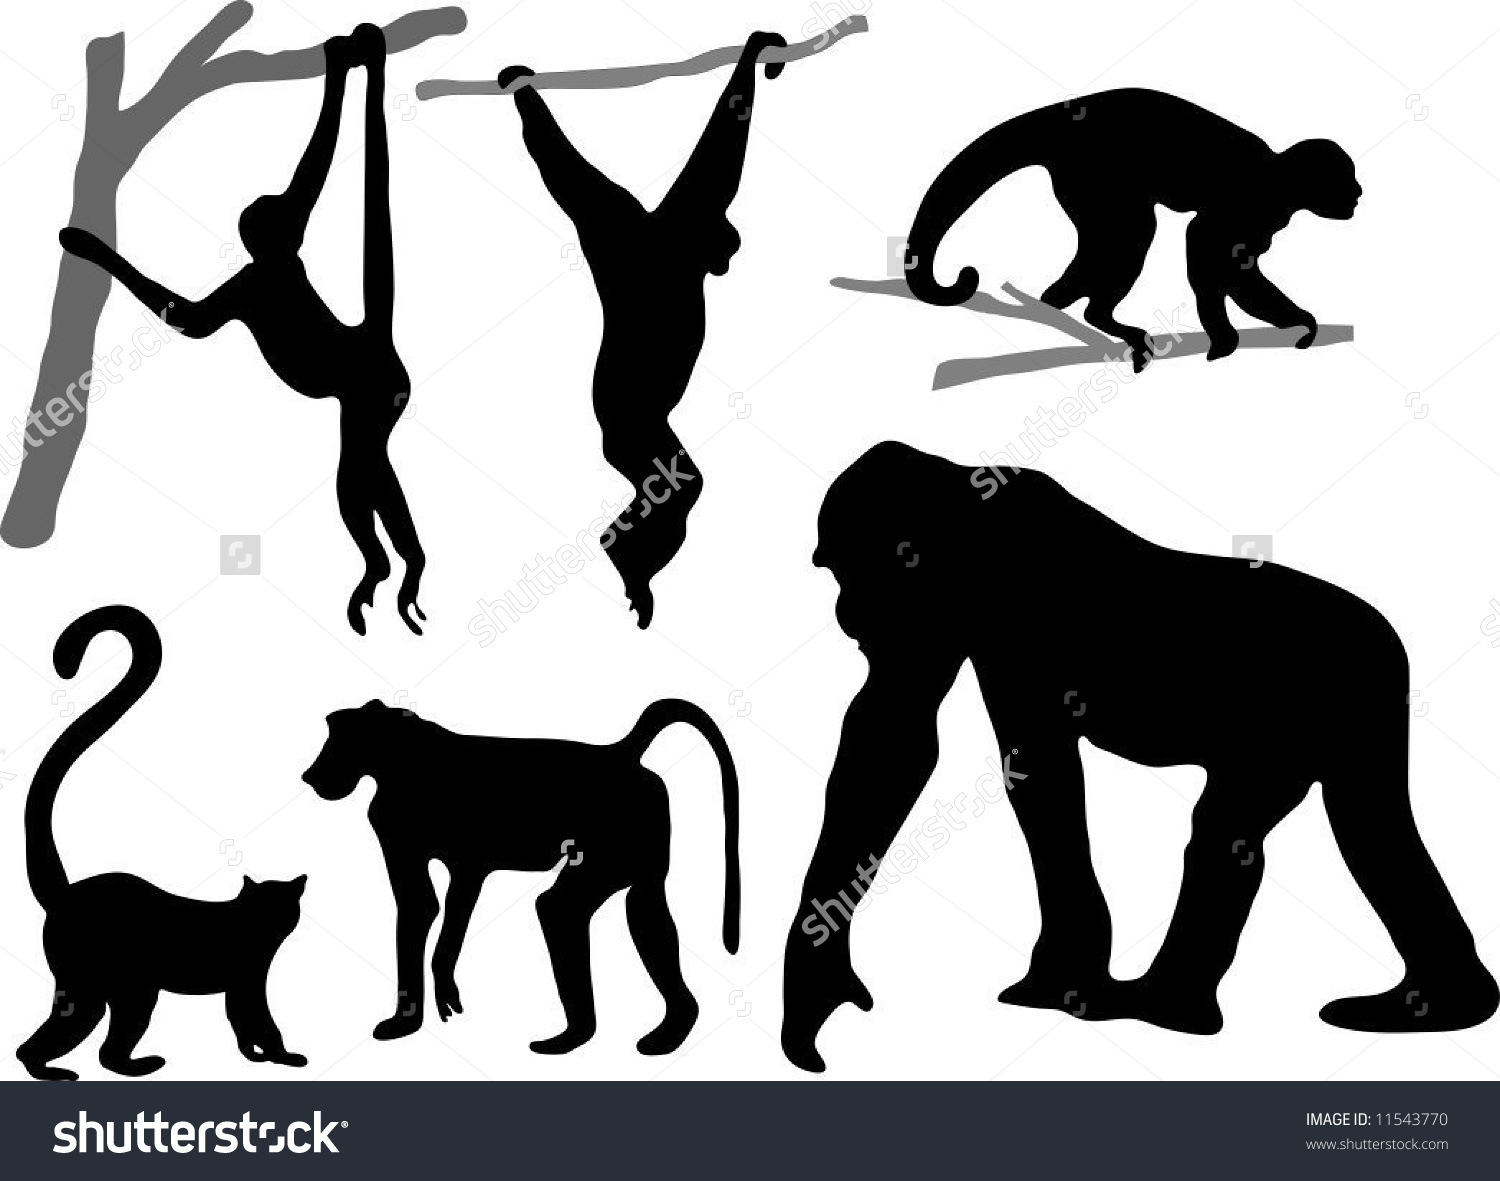 Primate clipart #4, Download drawings